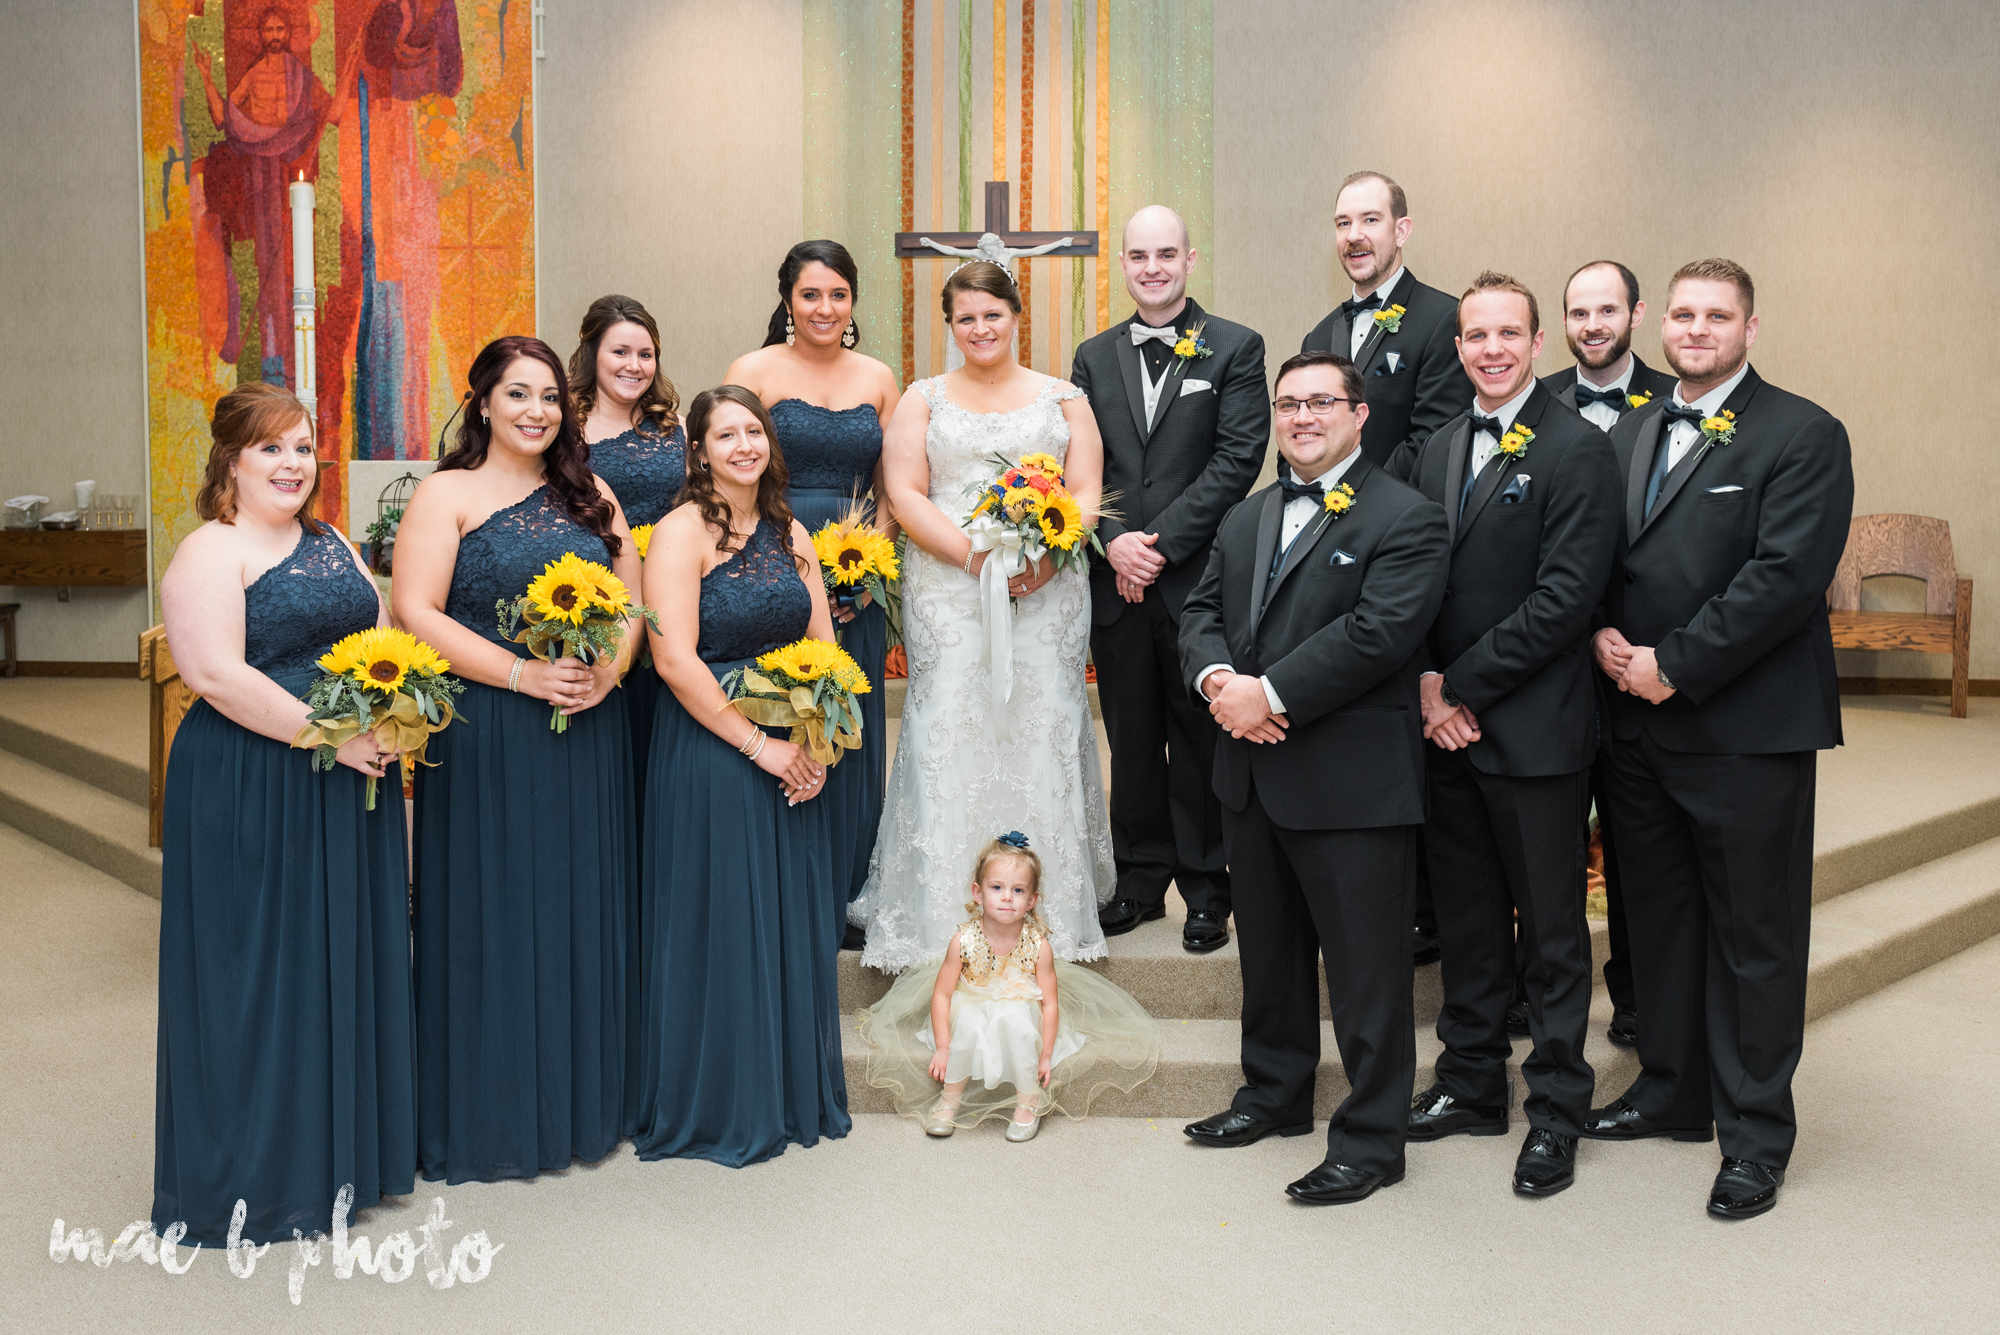 kaylynn & matt's fall zoo wedding at the cleveland metroparks zoo in cleveland ohio photographed by mae b photo-15.jpg